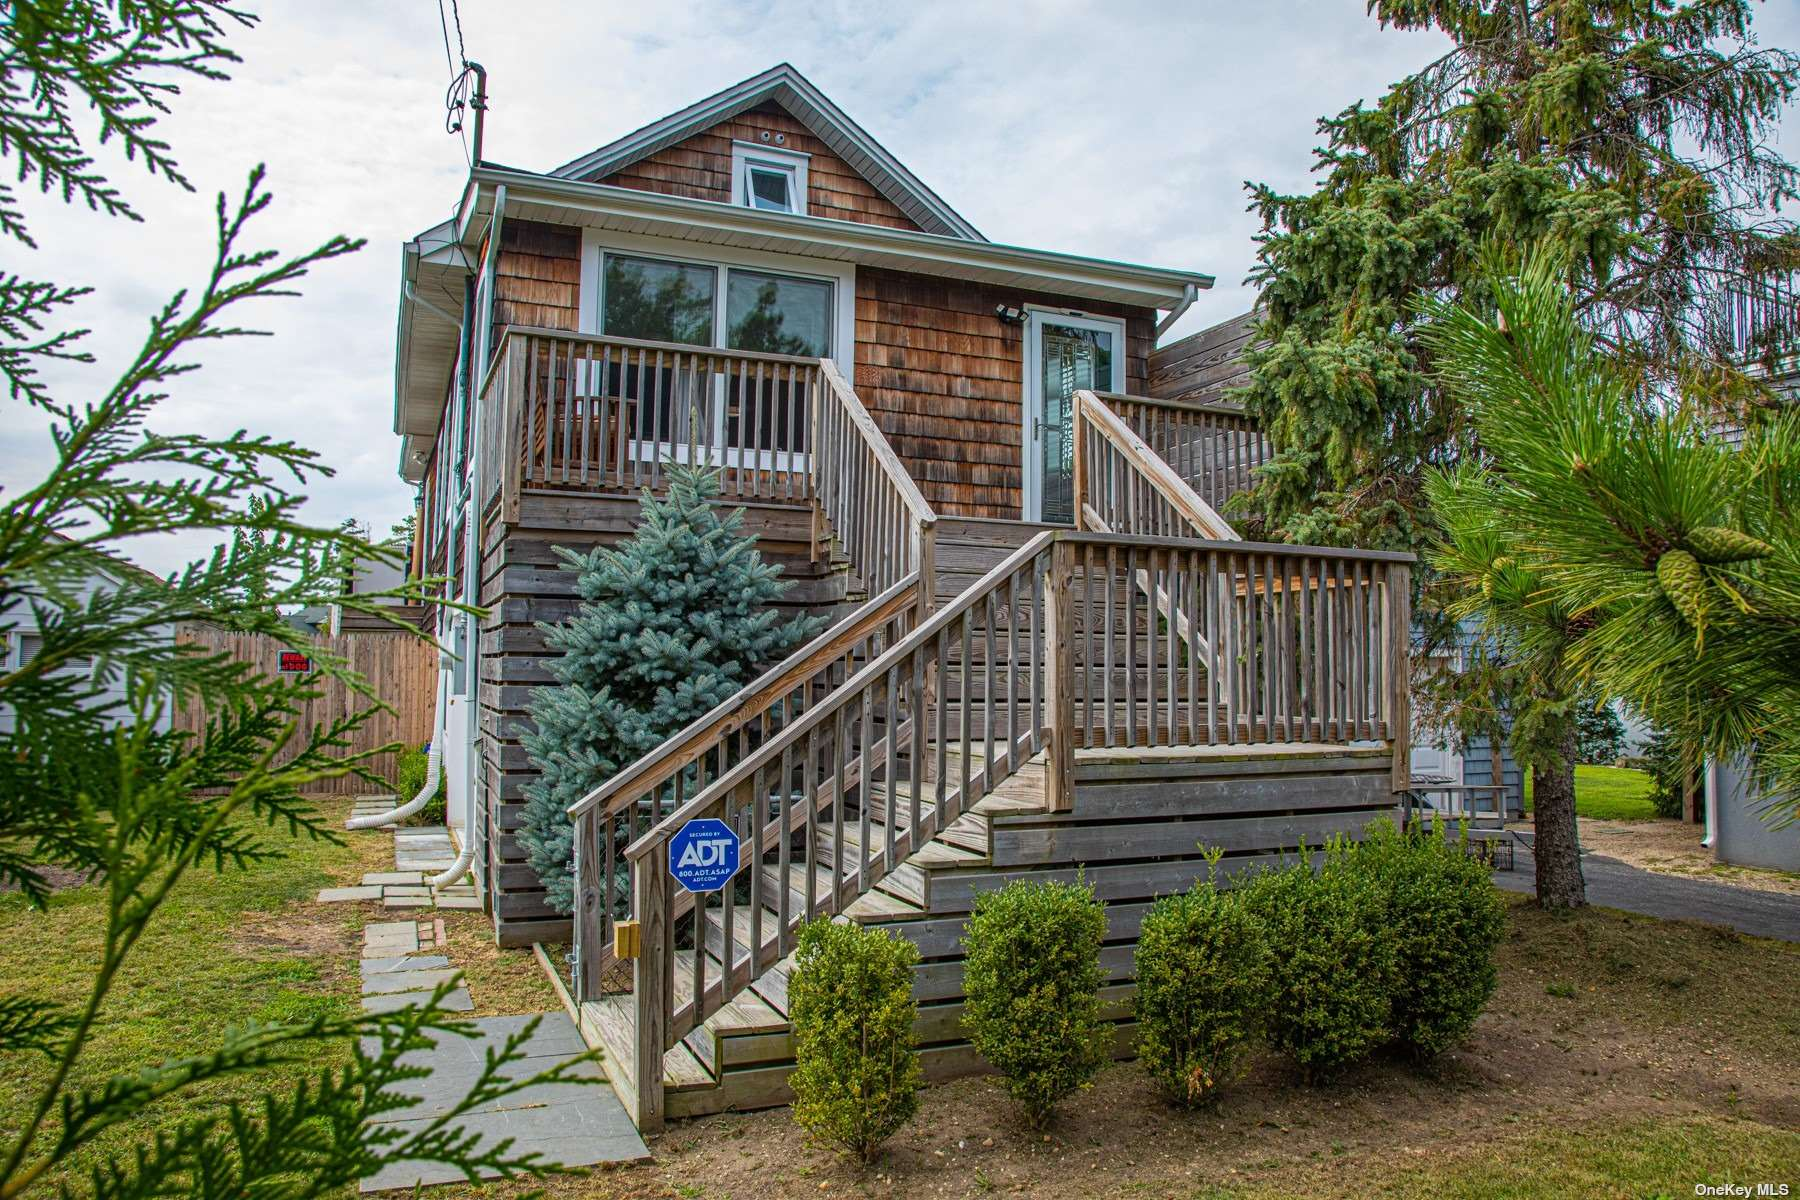 """Everything you dream about in a waterfront getaway! This elevated home offers waterfront views from every room! Originally a two bedroom it was opened for a better flow with the work from home view that overlooks the front porch. Elevated in 2017 this custom home sits on 27 helical piles & feat. a full walk out unfinished basement. Top of the line finishes include solid pecan hardwood floors, 6"""" wood moldings, custom wood blinds and high 9' ceilings! There is an open staircase to the part finished loft with skylights! The kitchen features porcelain tile floors, quartz counters, a viking range and Fisher & Paykel appliances. Designed to embrace the waterfront lifestyle you will not be disapointed with the screened in sunroom, 50 ft of navy bulk heading (2015) with a 50 x 8 deck, boat ramp and 27 x 9 ft out building to store all of your waterfront toys in! There is an Trust-T-Lift in the back for easy access as well as a mud room to complete this dream home!"""